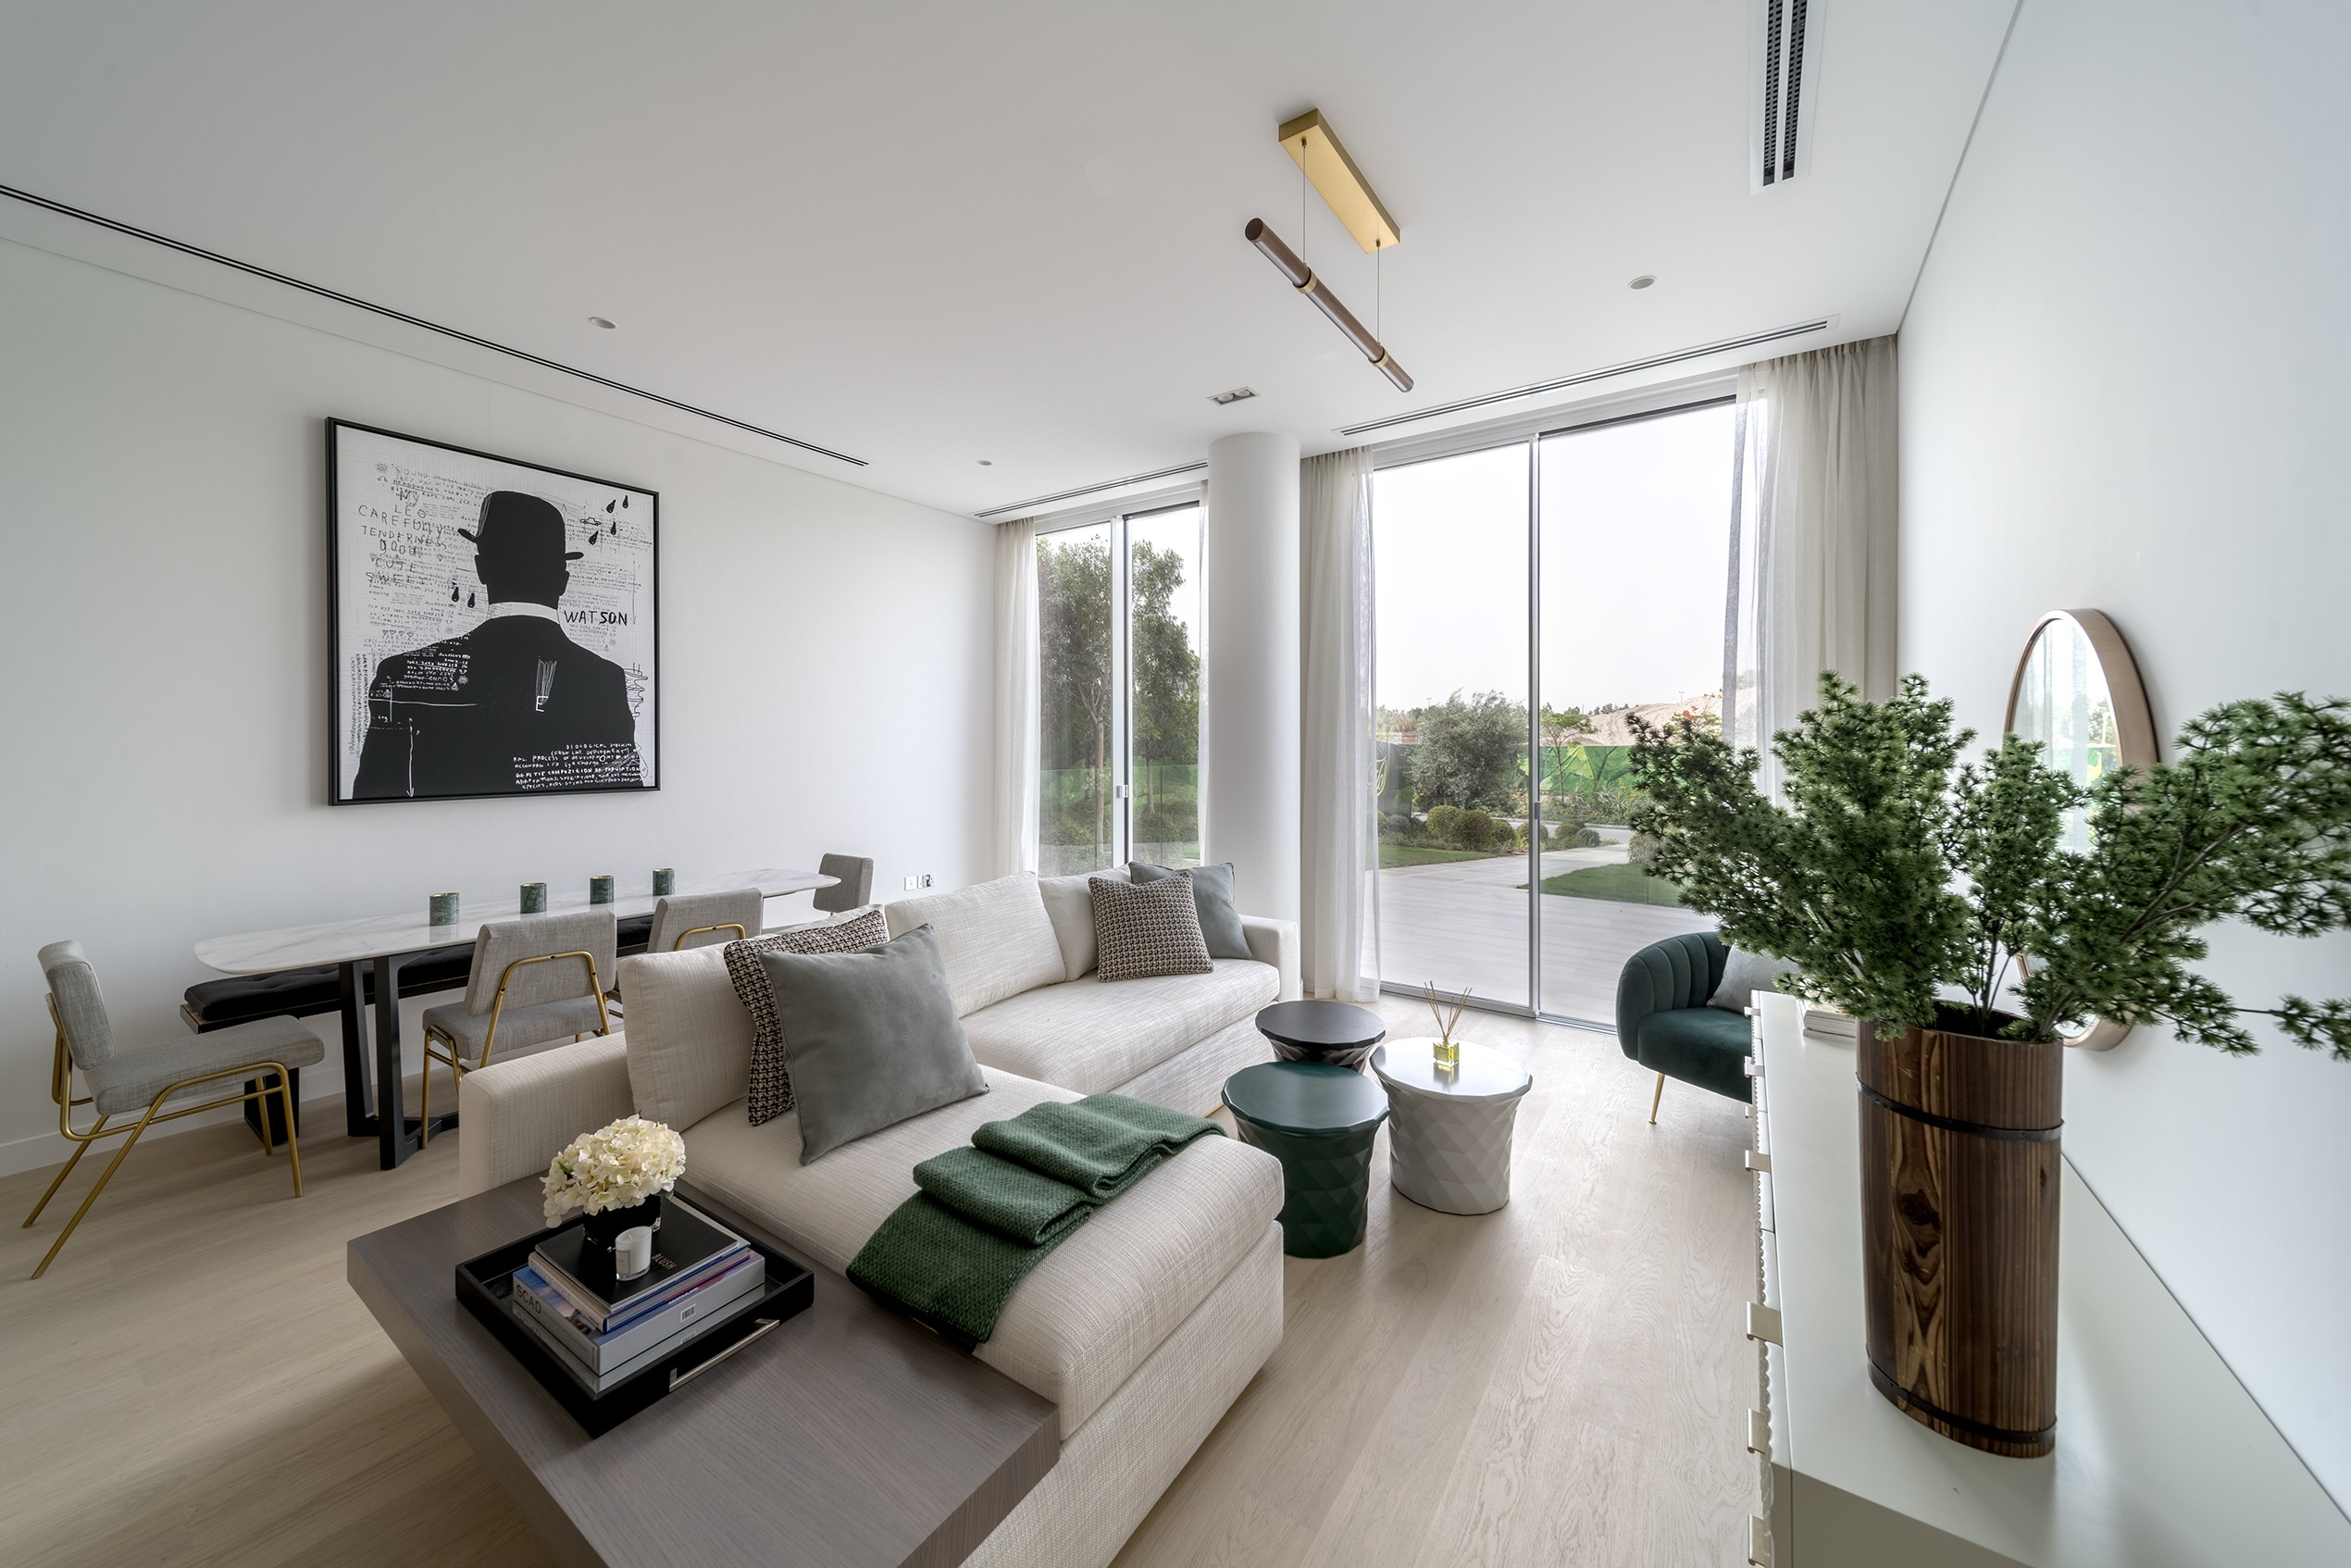 MODERN LUXURY 1BED | COVERED IN GREENERY